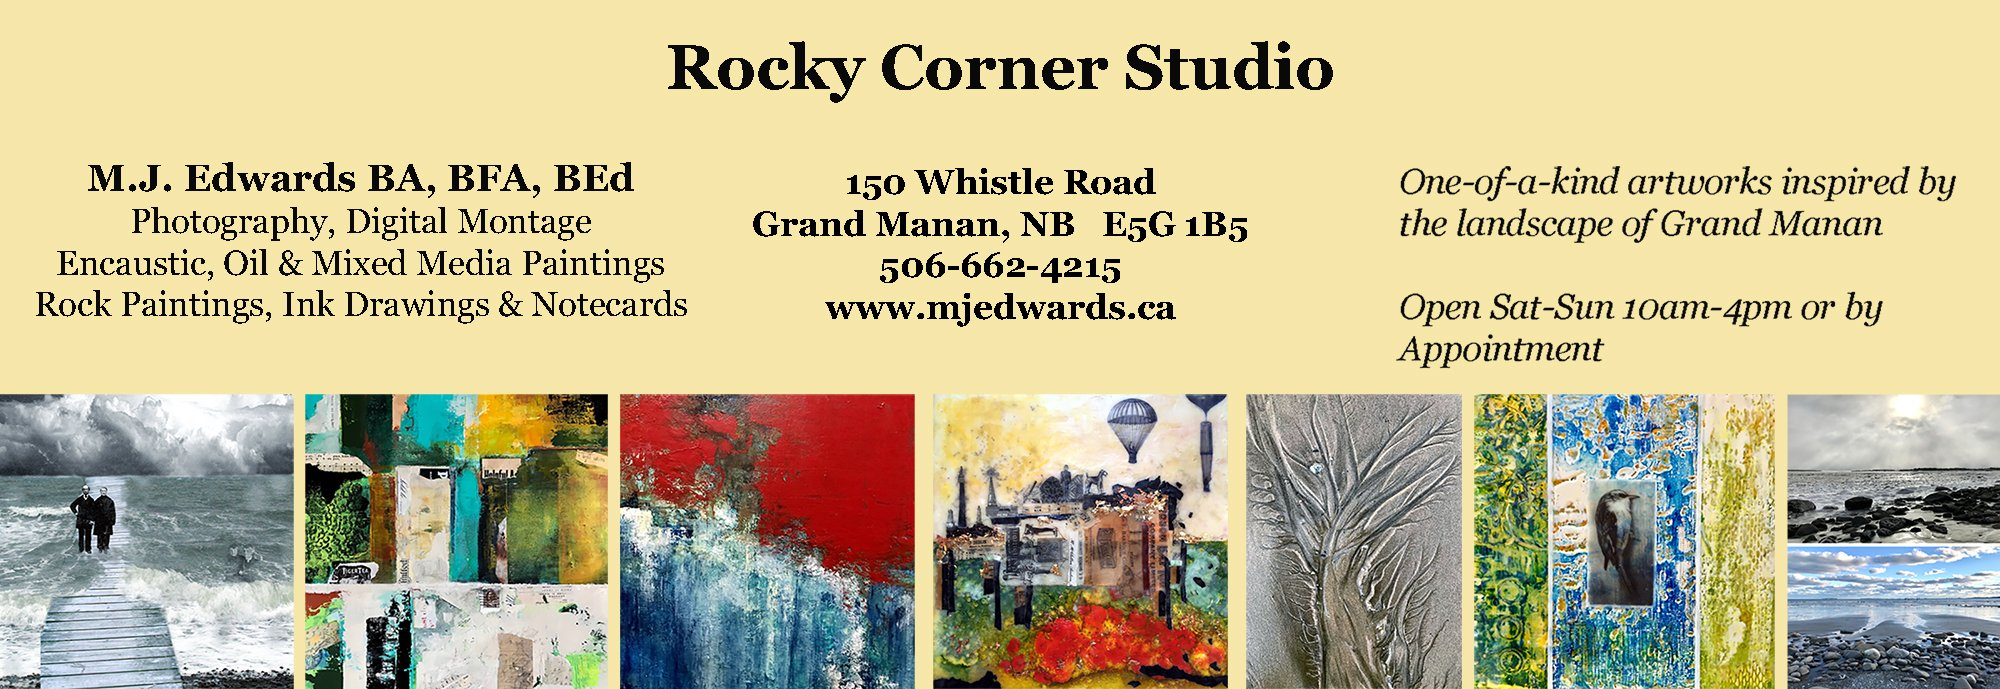 Rocky Corner Studio Artwork by M.J. Edwards